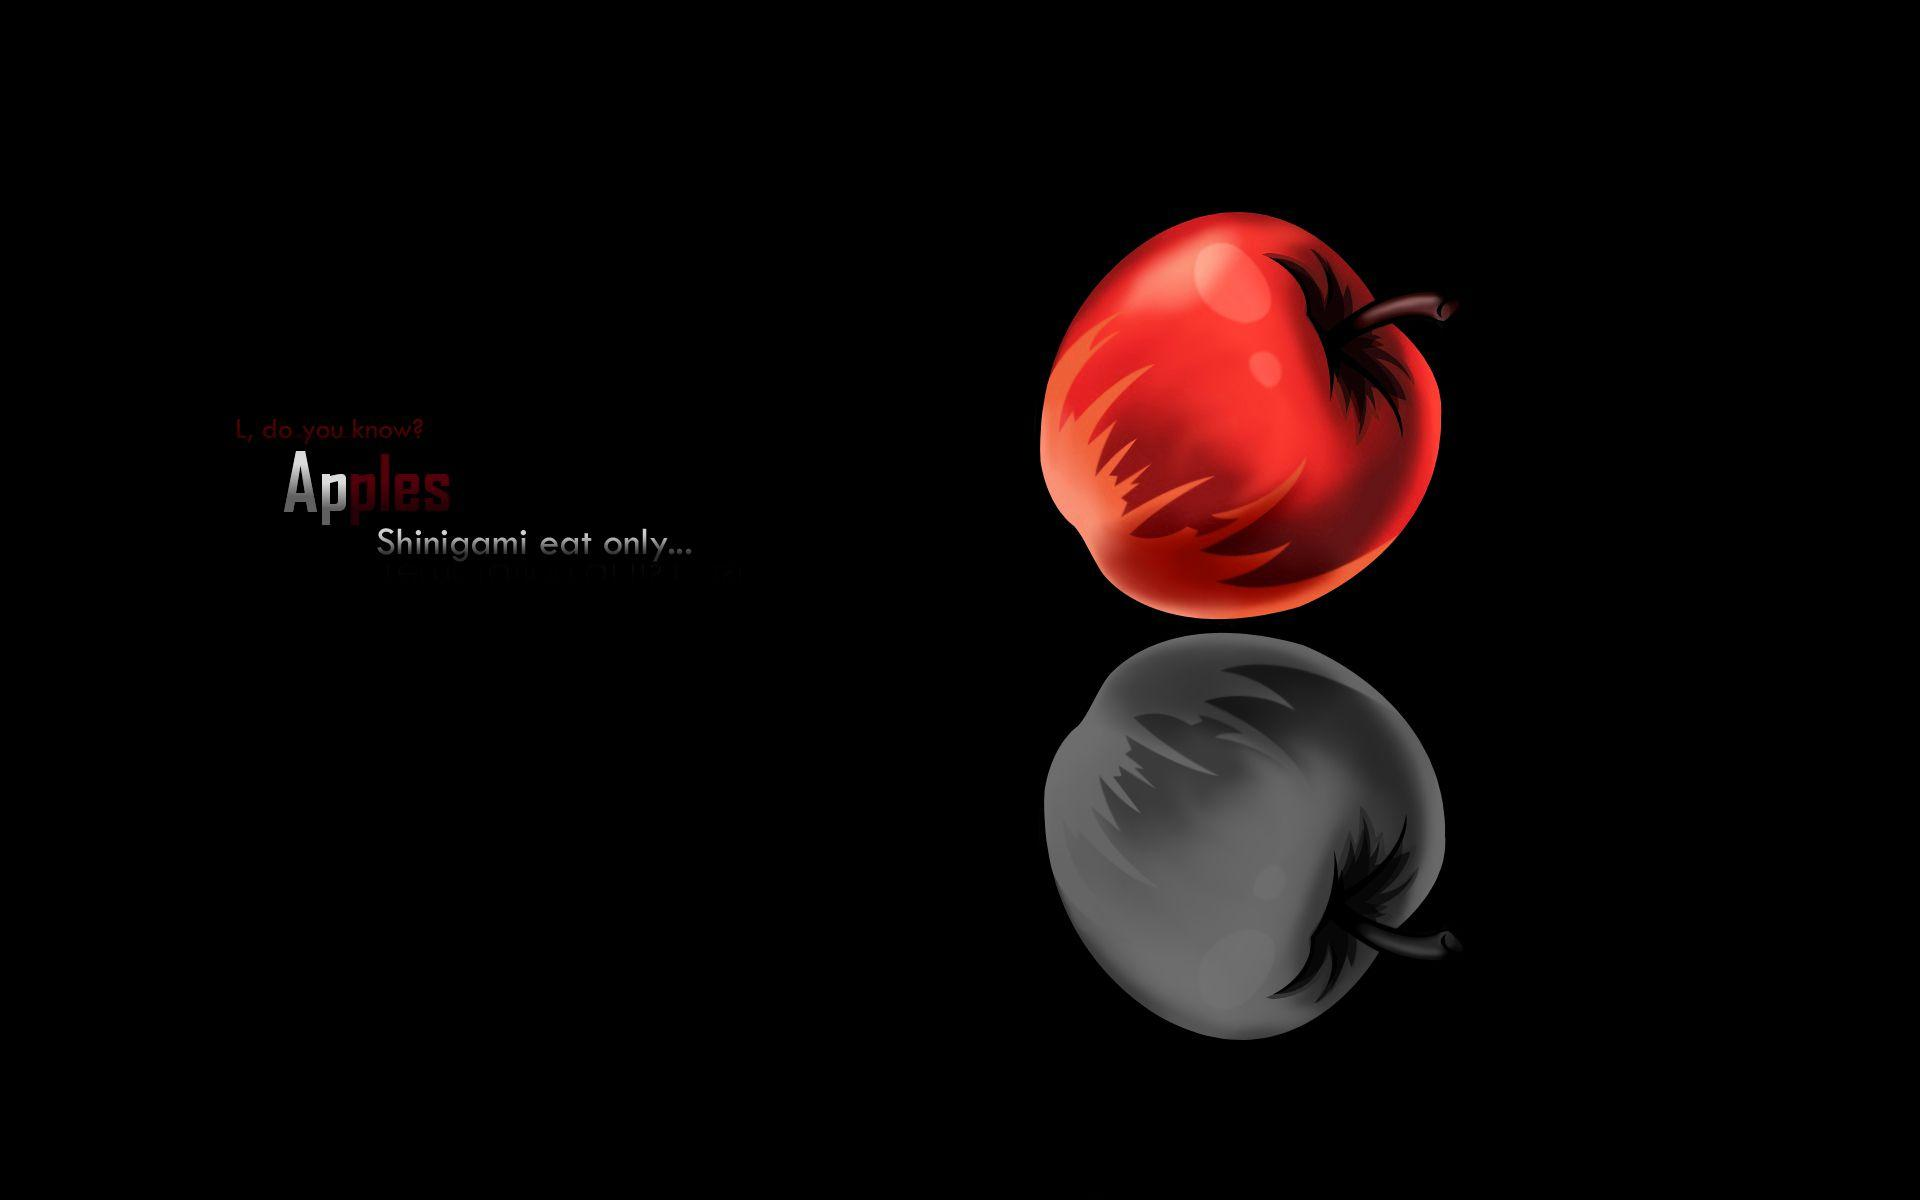 Death note - K death note wallpaper - Death note wallpaper ...